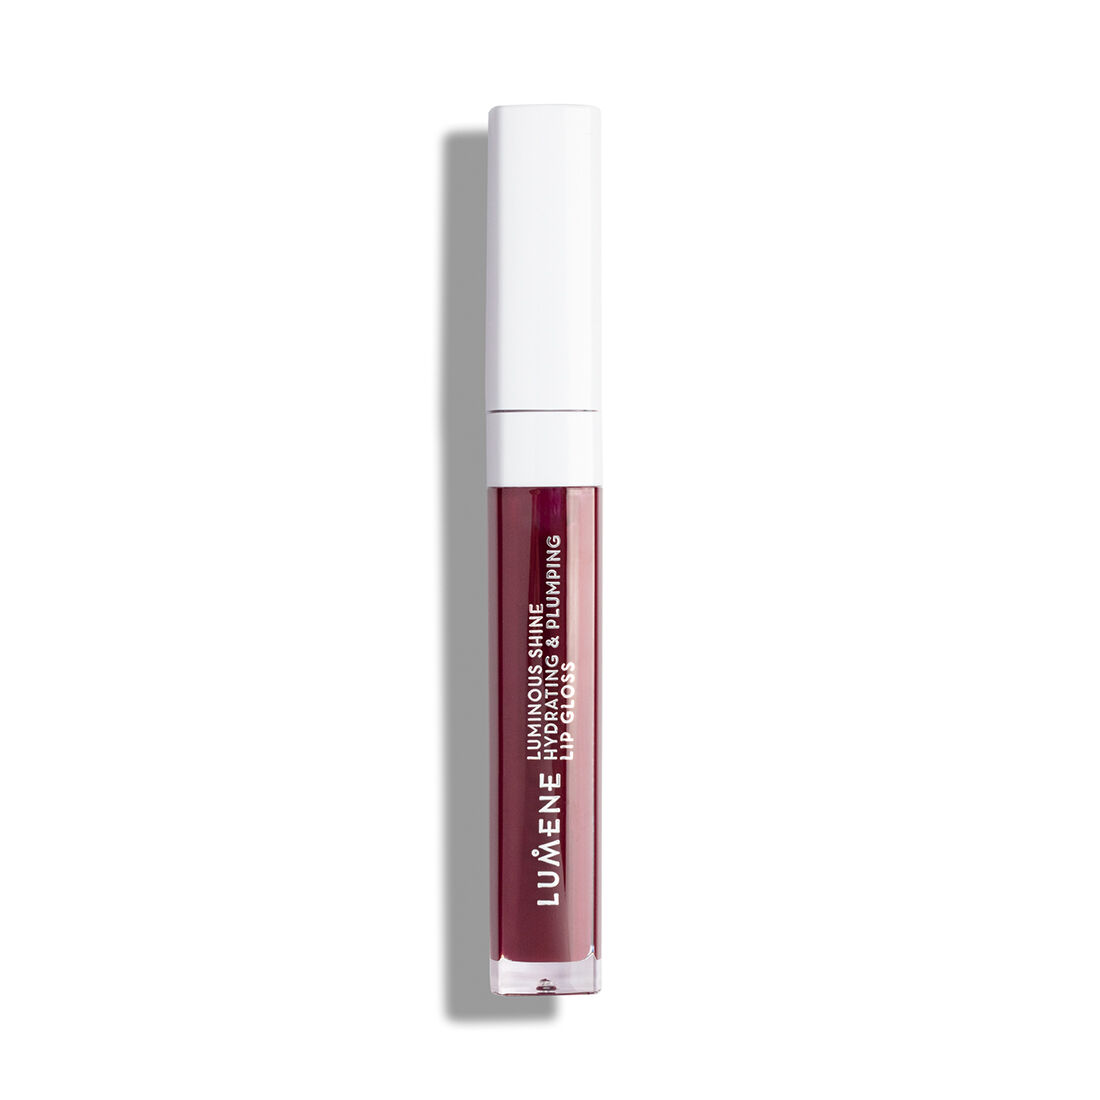 Блеск для губ Lumene Luminious Shine Hydrating #and#Plumping Lip Gloss 10 Fresh Plum 5 мл